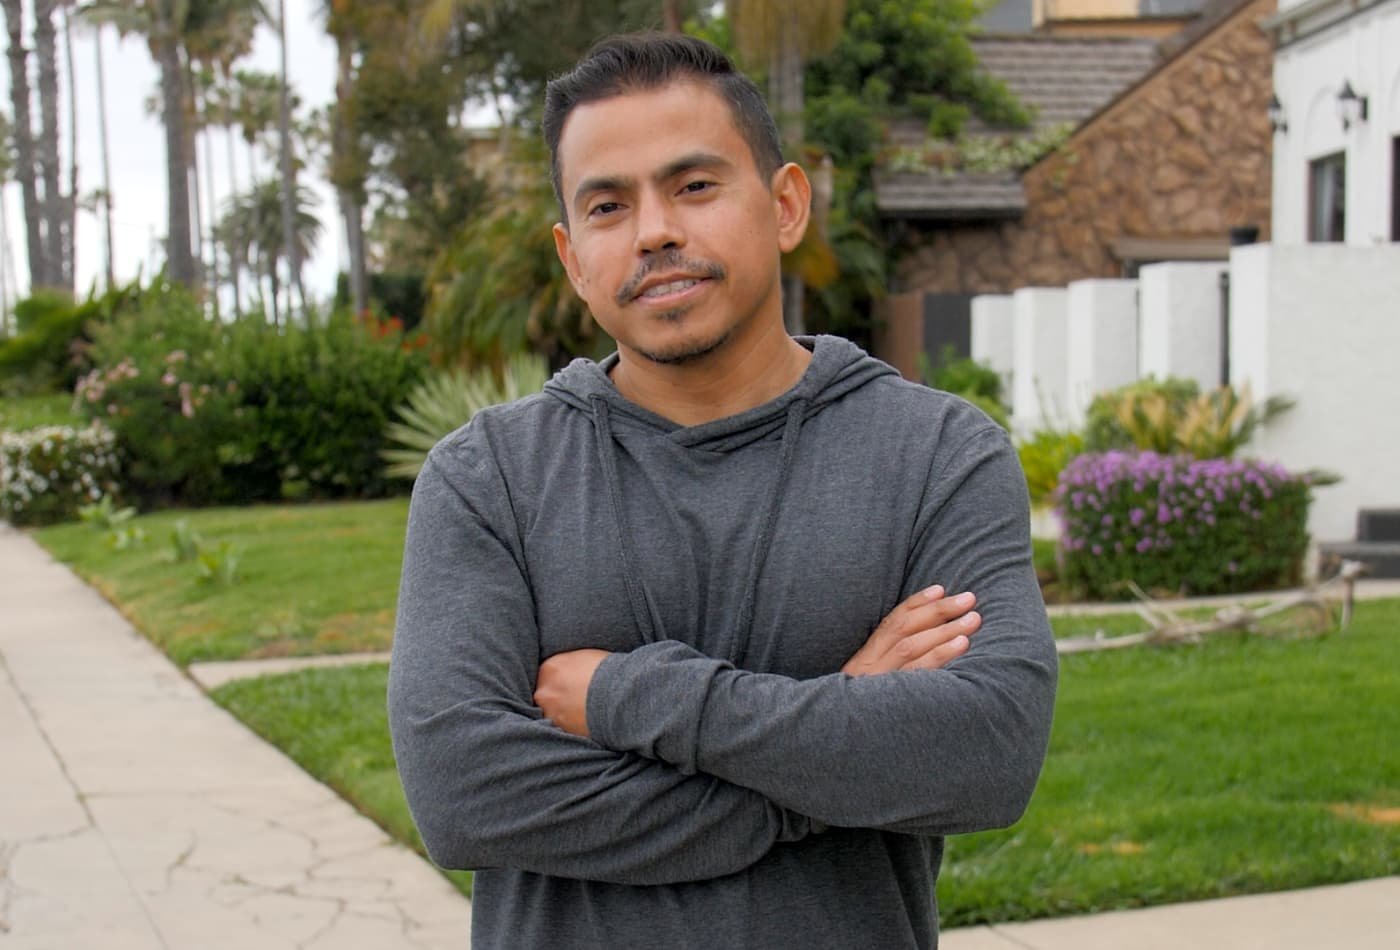 40-year-old earning $75,000 a year in LA: 'I don't have it all together' and that's OK